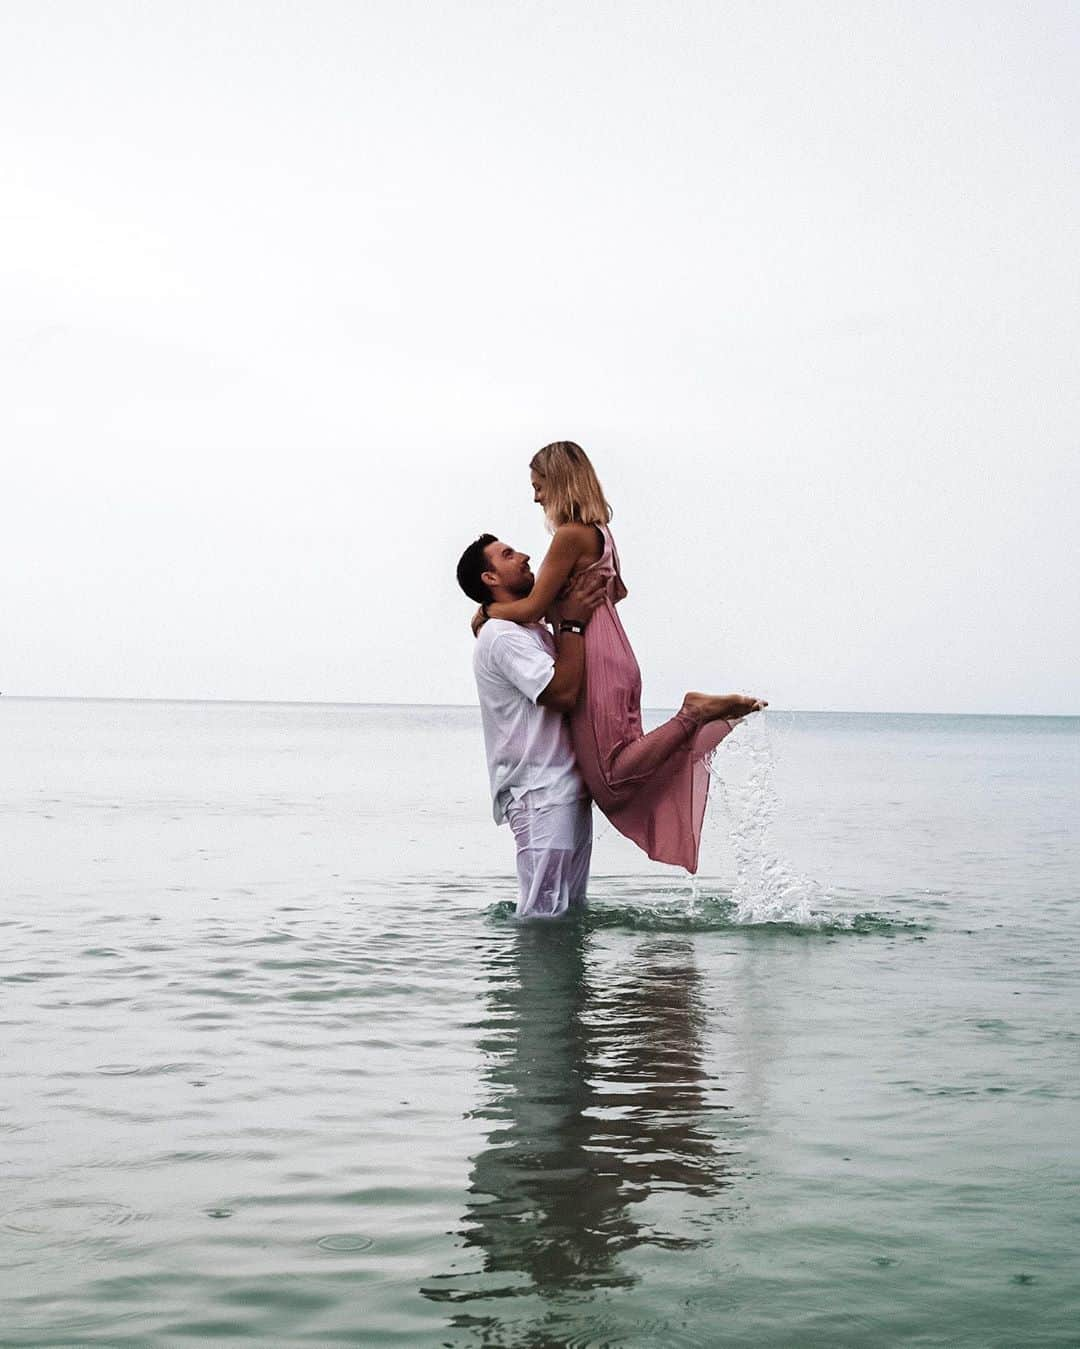 man carrying woman in the sea